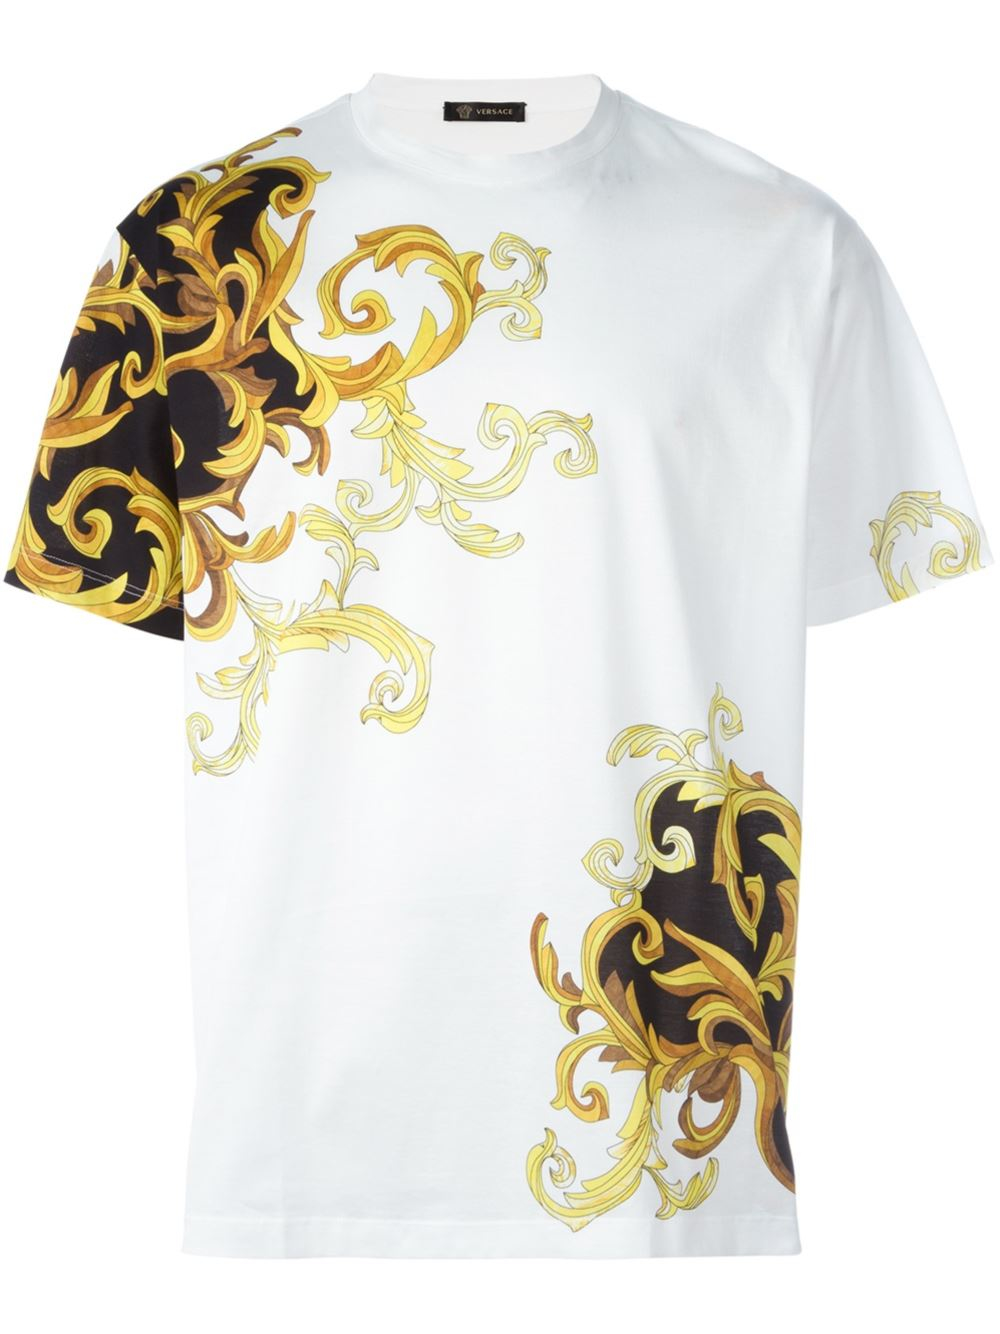 ac966e240 Versace Baroque Accent T-shirt in White for Men - Lyst